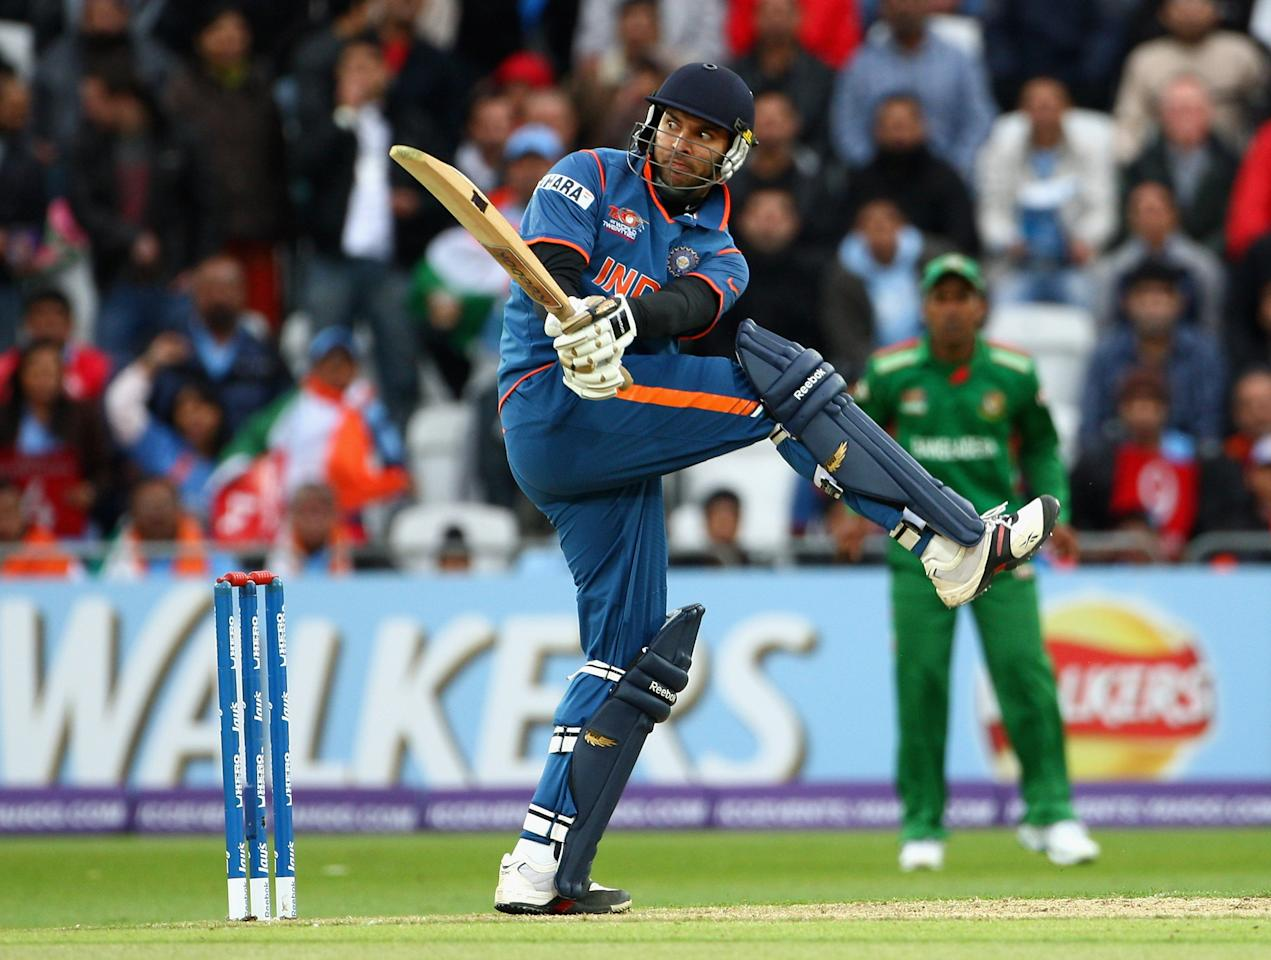 NOTTINGHAM, ENGLAND - JUNE 06:  Yuvraj Singh of India hits out during the ICC Twenty20 World Cup match between India and Bangladesh at Trent Bridge on June 6, 2009 in Nottingham, England.  (Photo by Laurence Griffiths/Getty Images)